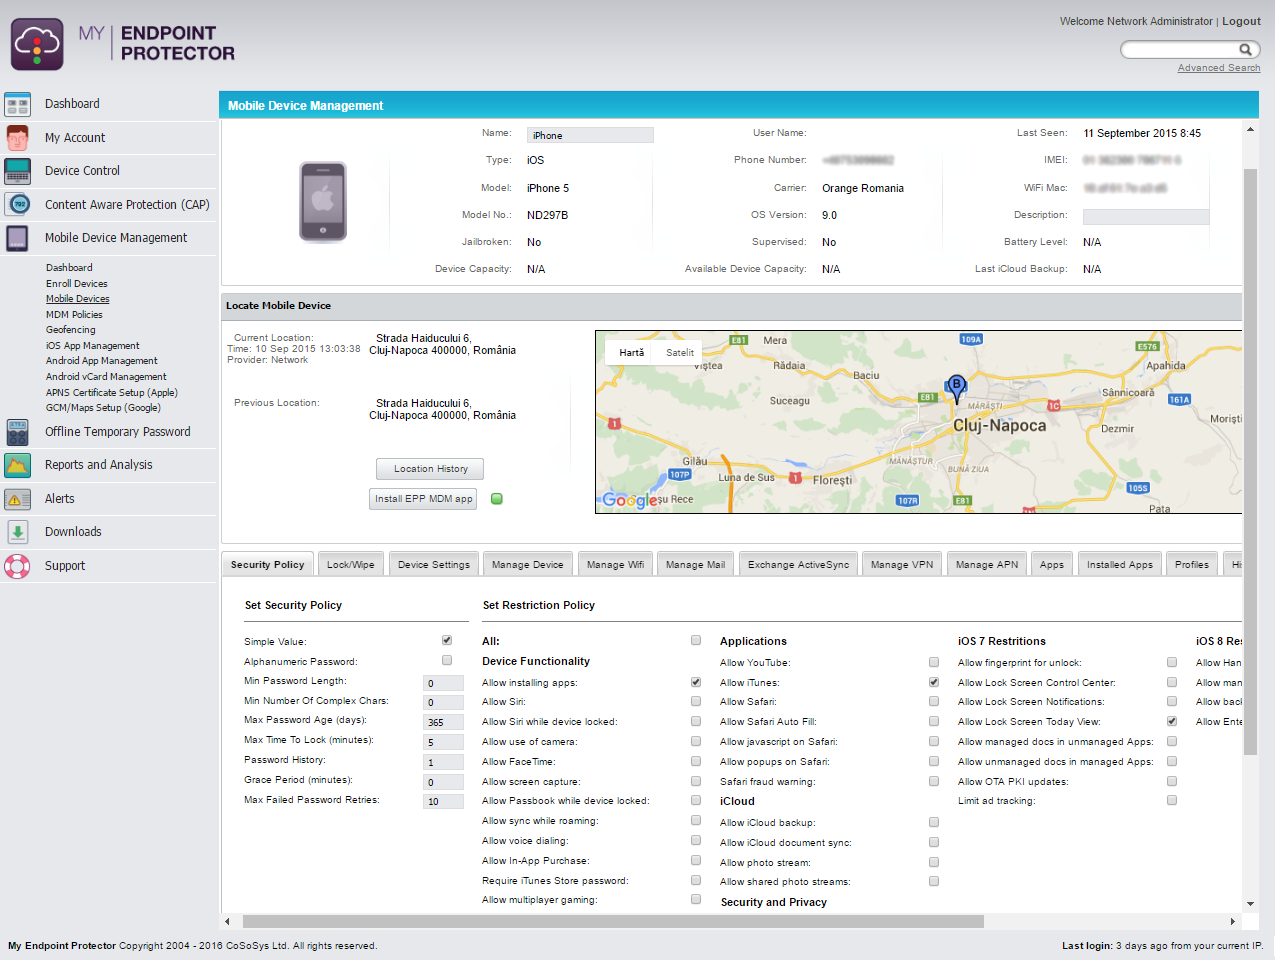 Mobile Device Management - Manage Security Restrictions for iOS